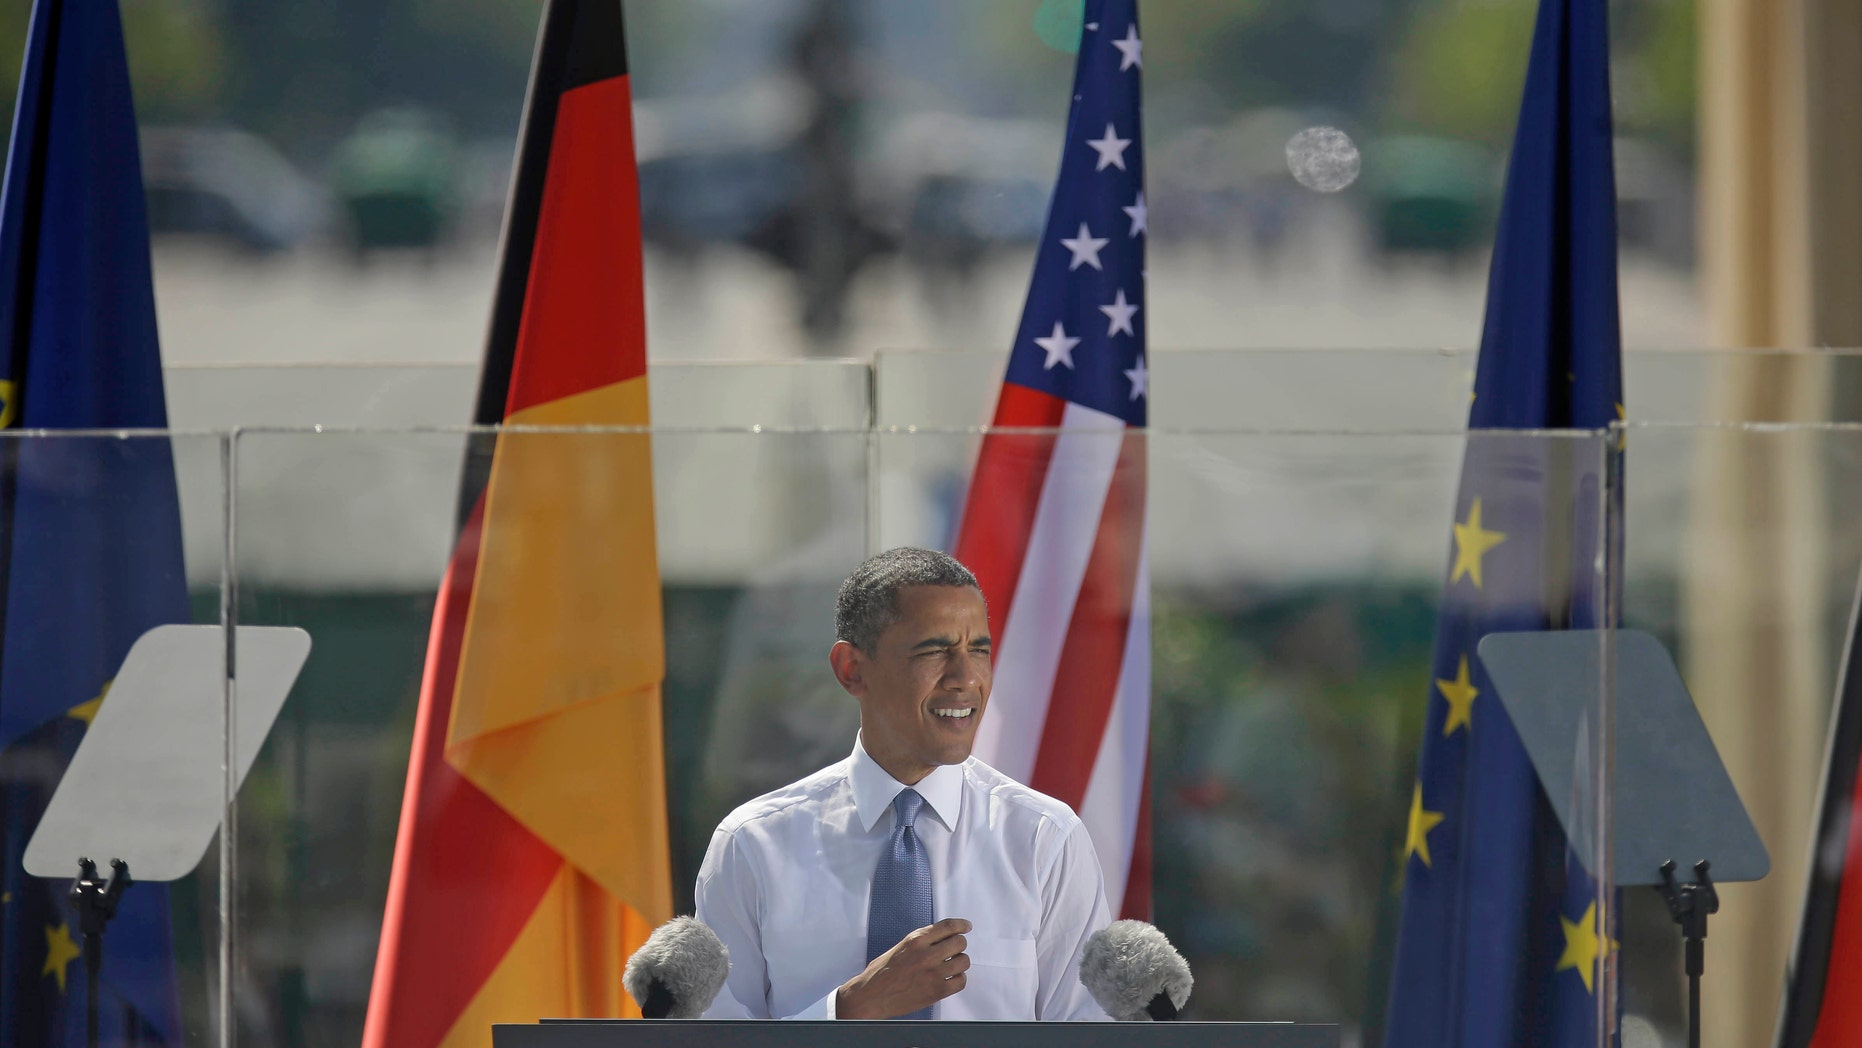 """President Barack Obama speaks in front of the iconic Brandenburg Gate in Berlin Germany, Wednesday, June 19, 2013. Obama is planning a major push using executive powers to tackle the pollution blamed for global warming in an effort to make good on promises he made at the start of his second term. """"We know we have to do more  and we will do more,"""" Obama said in Berlin. (AP Photo/Pablo Martinez Monsivais)"""